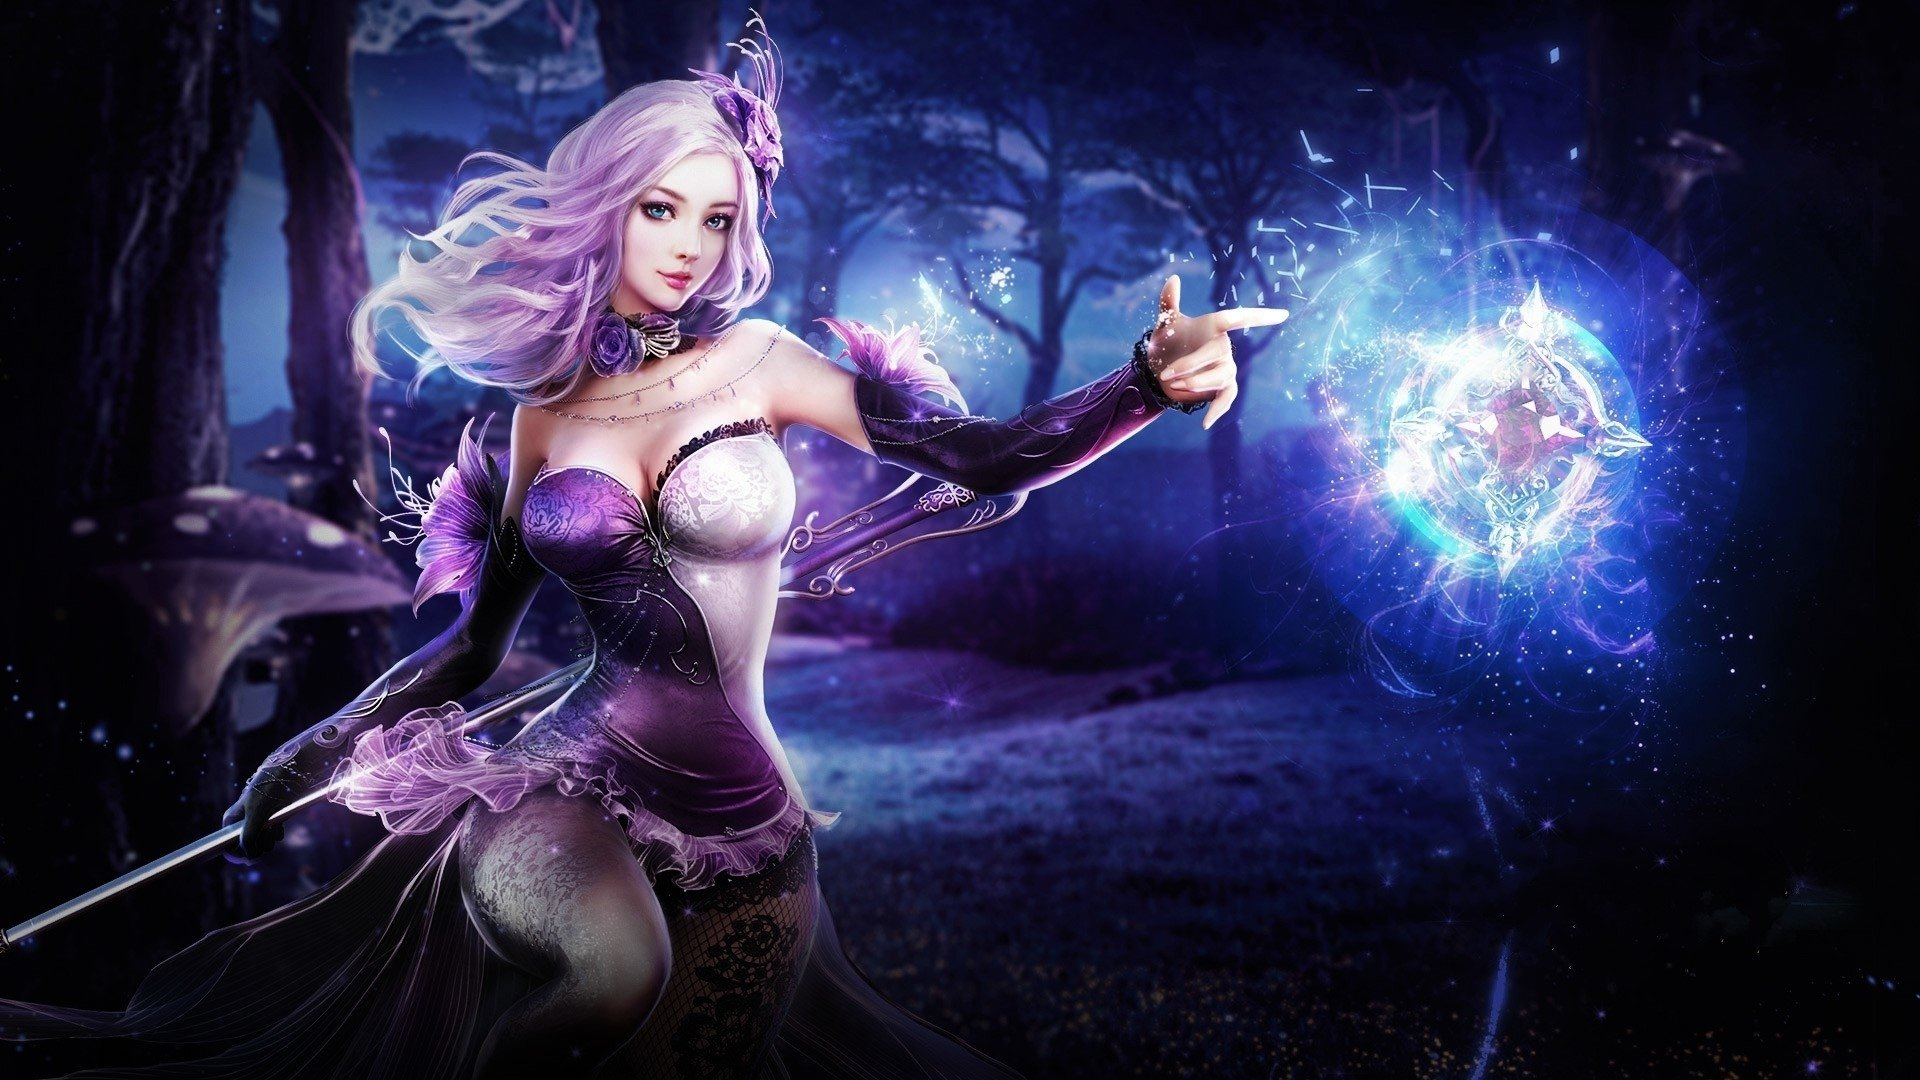 3d Hd Wallpapers Priestess Sorceress Hd Wallpaper Background Image 1920x1080 Id